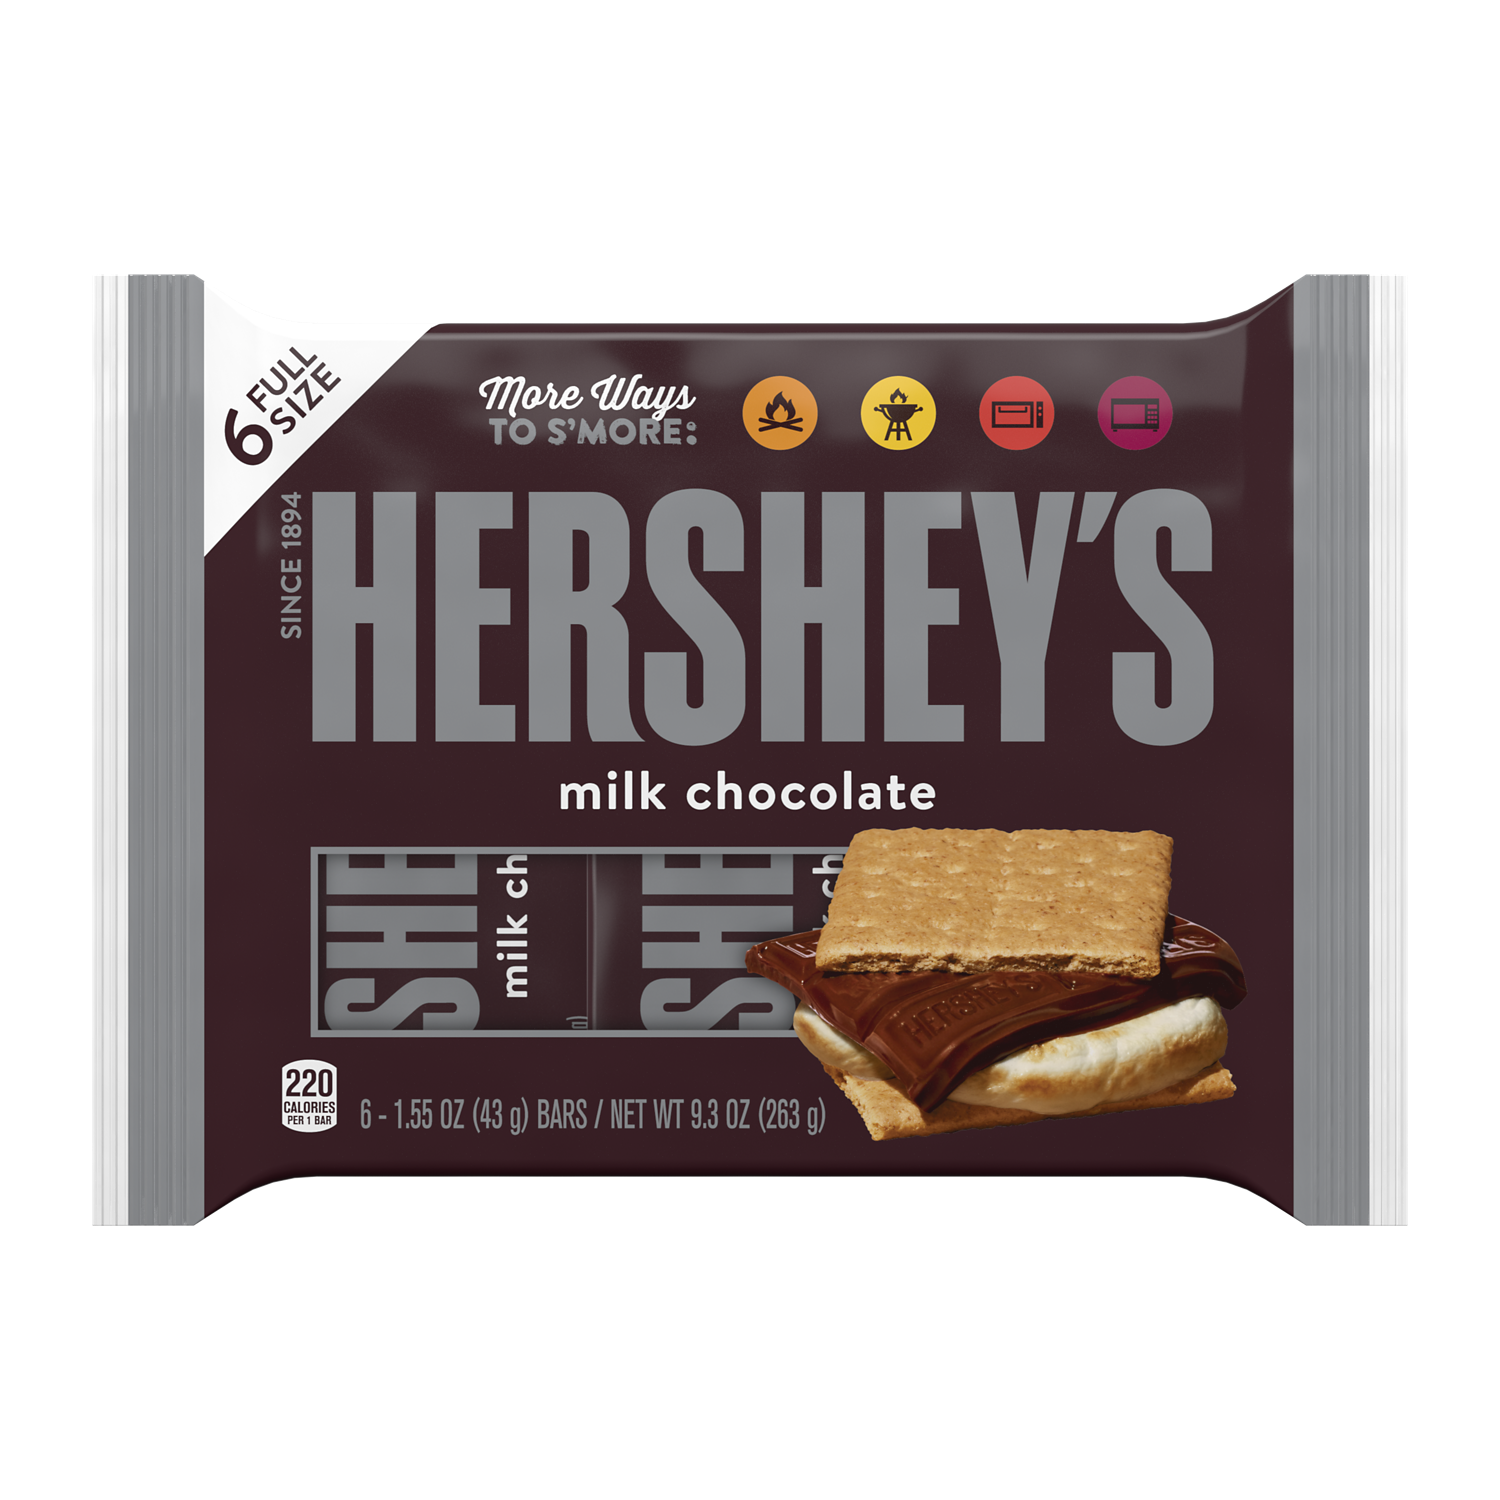 HERSHEY'S Milk Chocolate Candy Bars, 9.3 oz, 6 pack - Front of Package